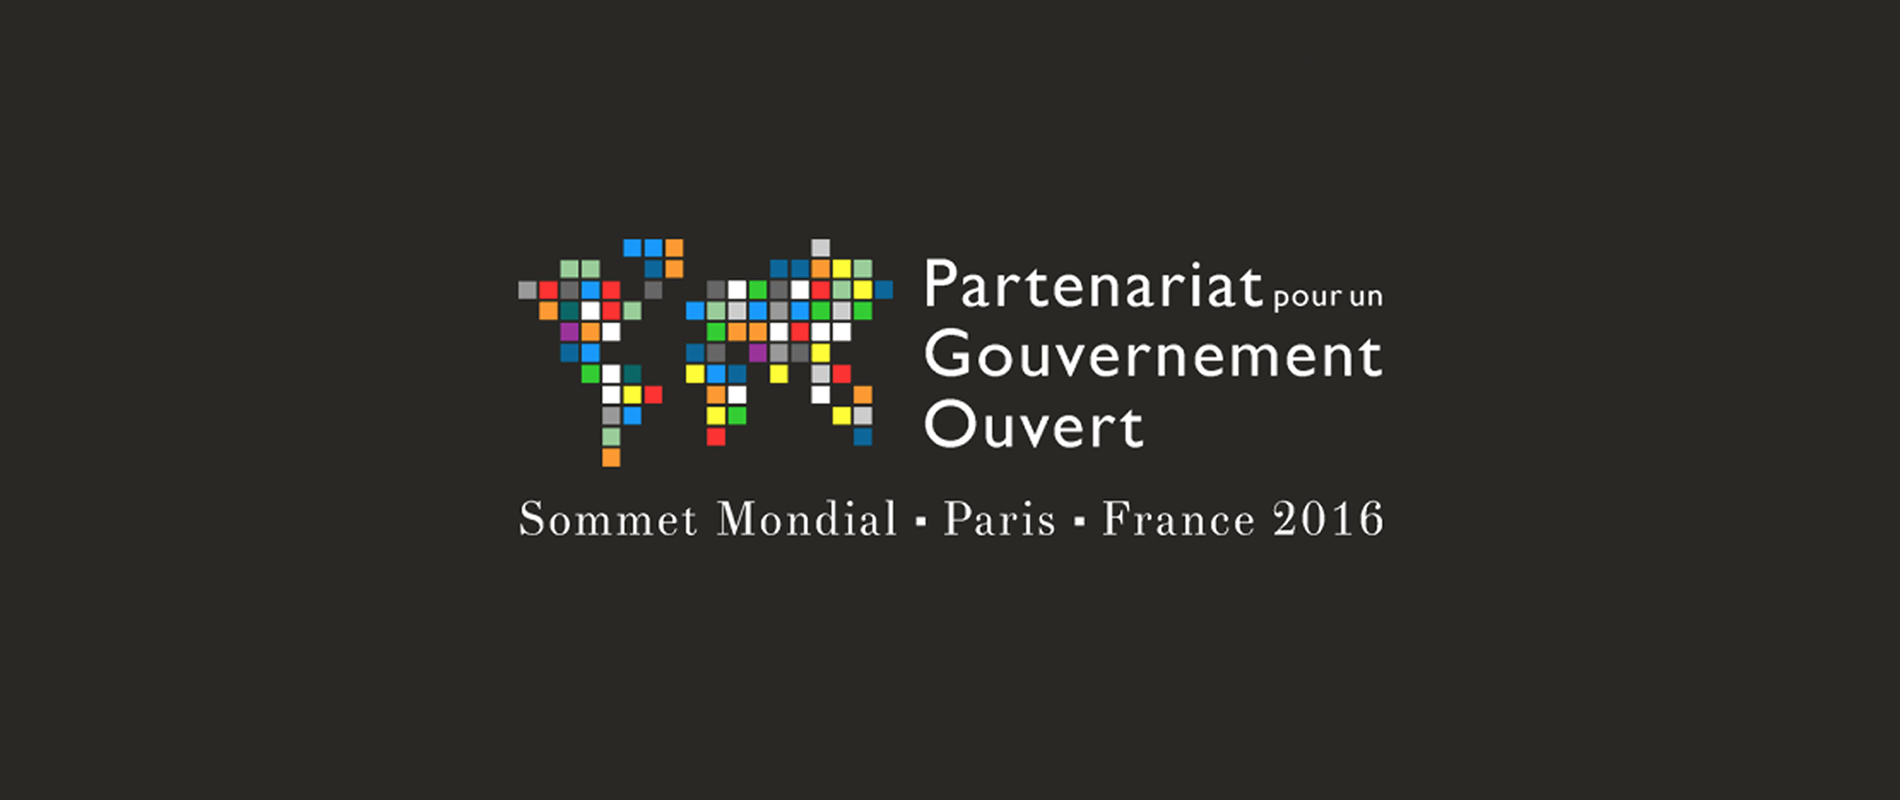 coop-cite-event-sommet-mondial-opg-img